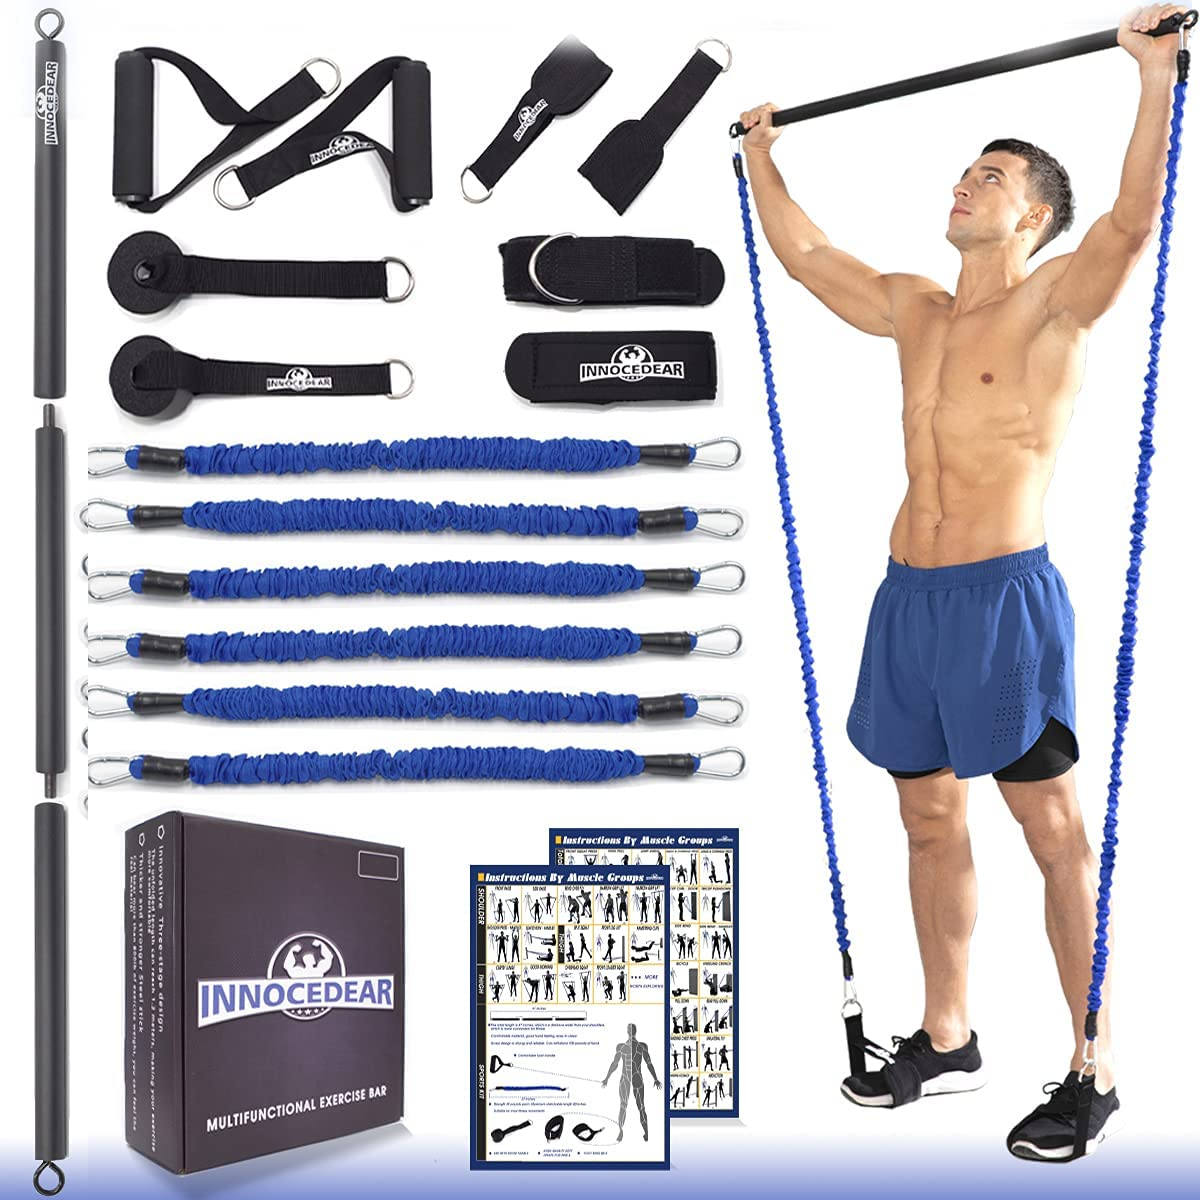 INNOCEDAR Home Gym Bar Kit with Resistance Bands,Portable Gym Full Body Workout,Adjustable Pilates Bar System,Safe Exercise Weight Set,Home Exercise Equipment for Men&Women- Muscle&Fitness